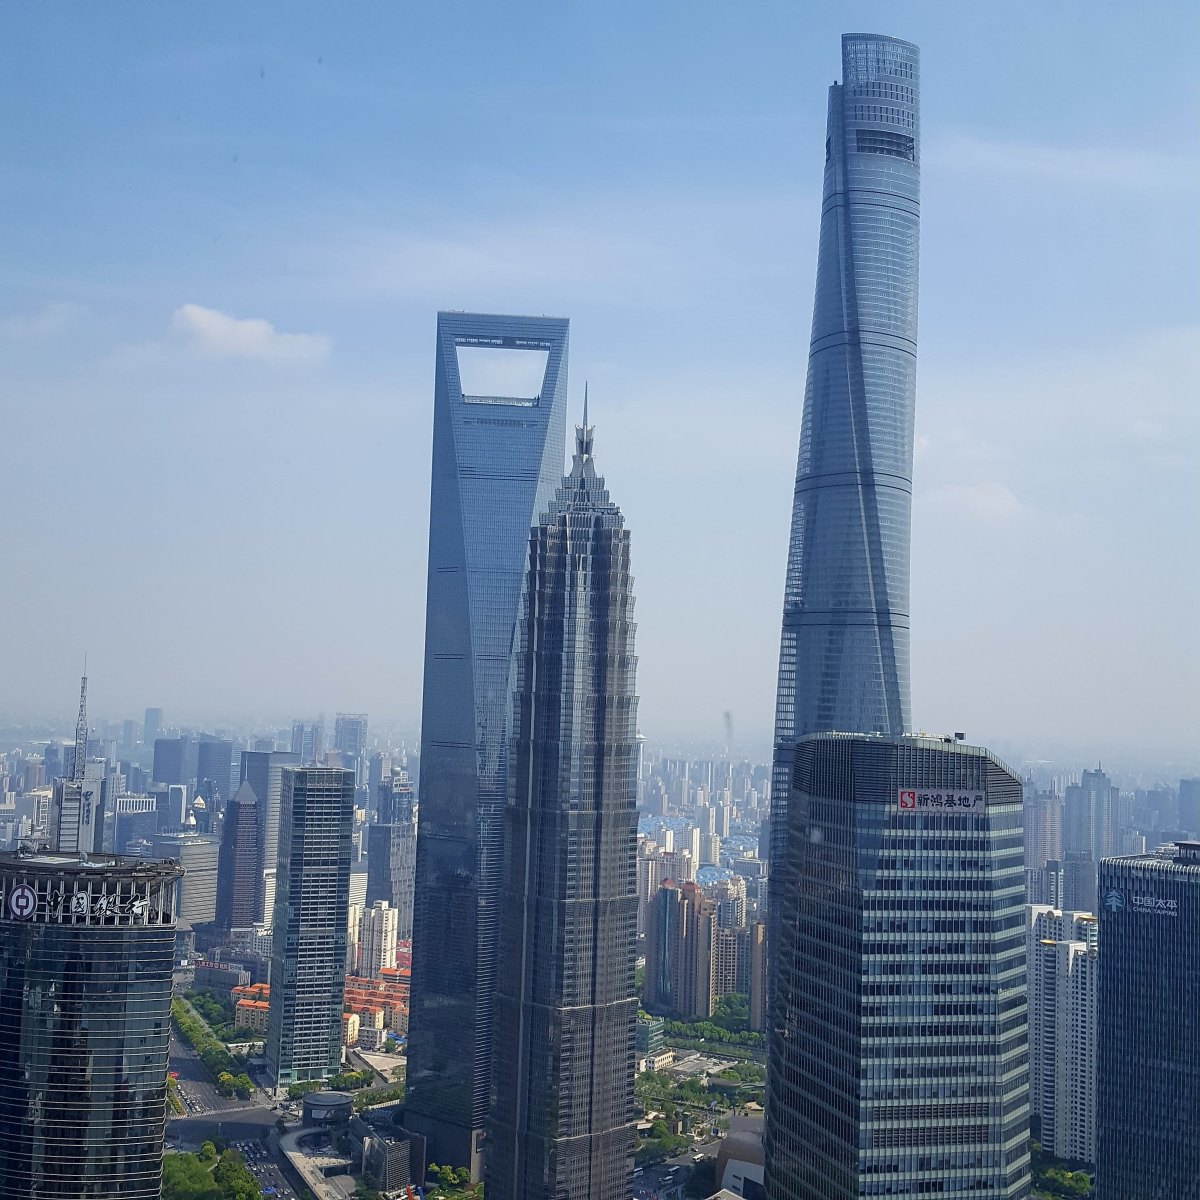 Three famous skyscrapers.  Pictured here: Shanghai Tower - now Shanghai's tallest building at 632m tall. Shanghai World Financial Center Jin Mao Tower These three towers also have observation decks that are open to the public.